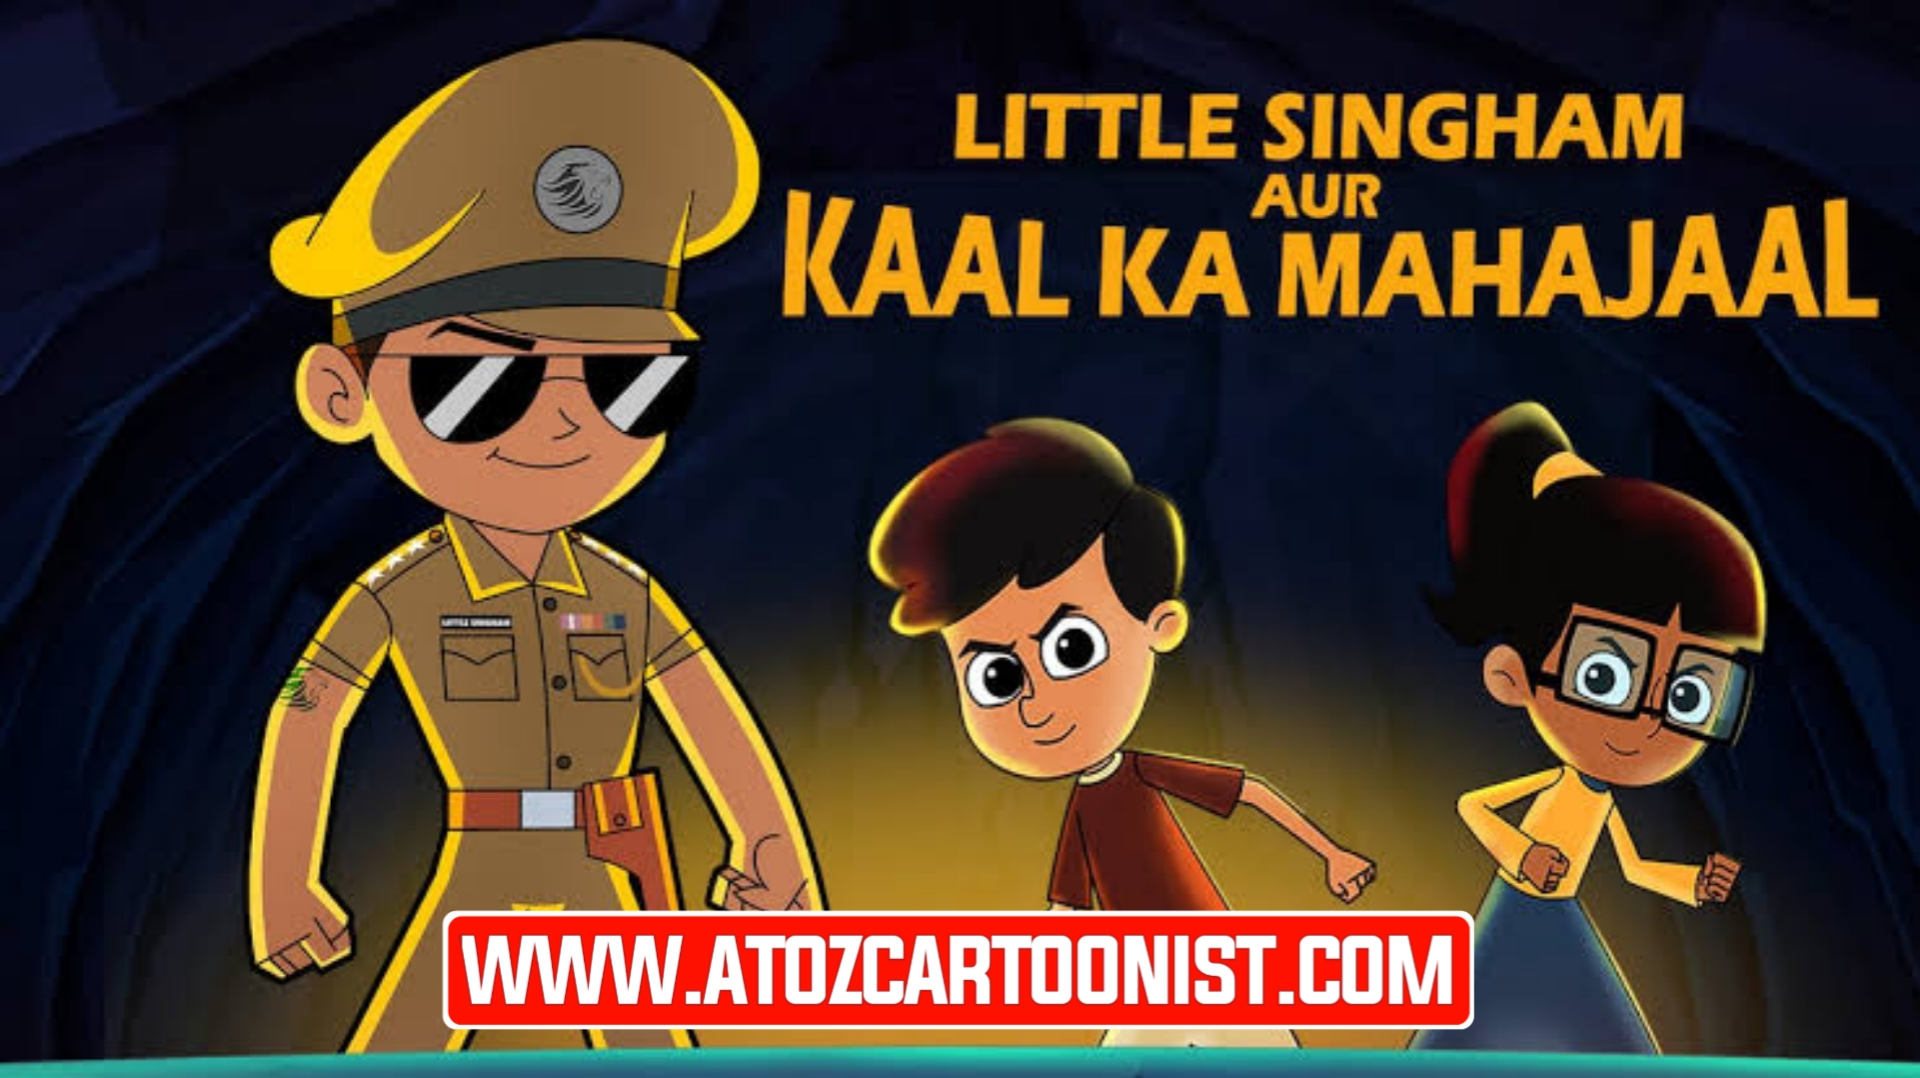 LITTLE SINGHAM AUR KAAL KA MAHAJAAL FULL MOVIE IN HINDI & TELUGU DOWNLOAD (480P, 720P & 1080P)